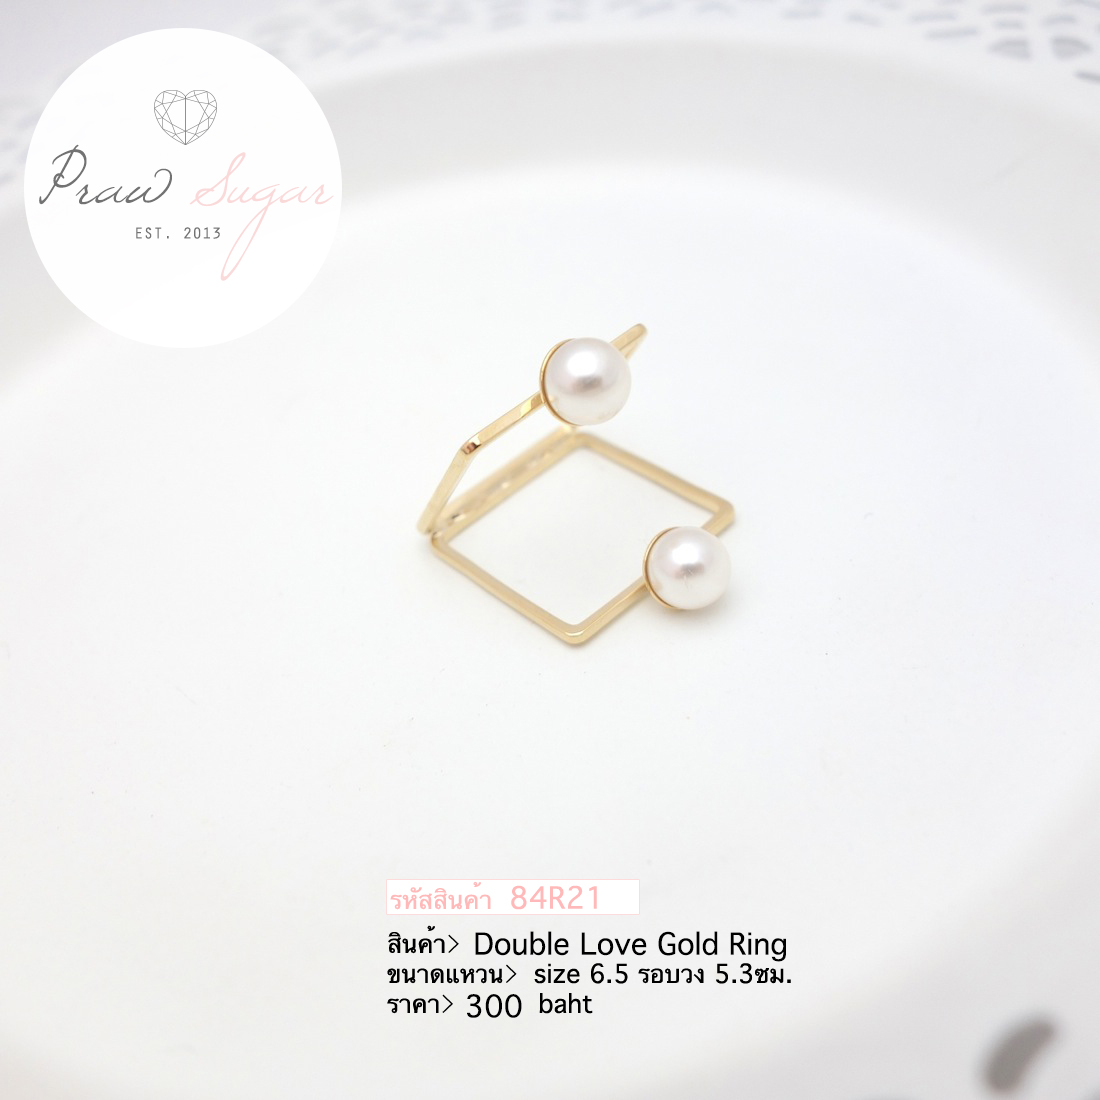 Double Love Gold Ring